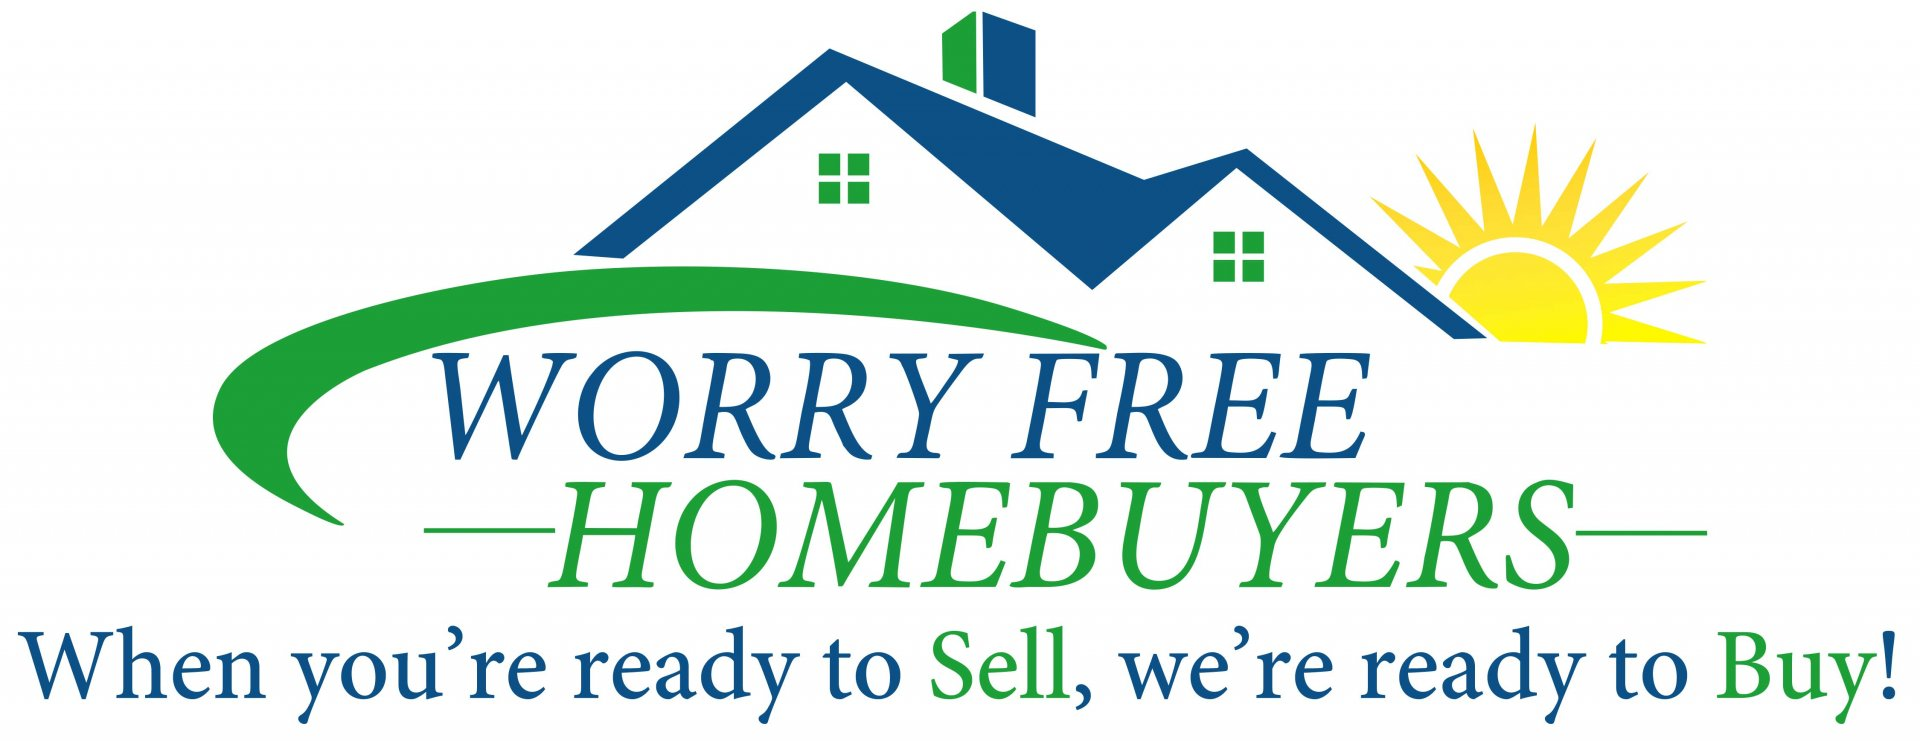 Worry Free Home Buyers logo